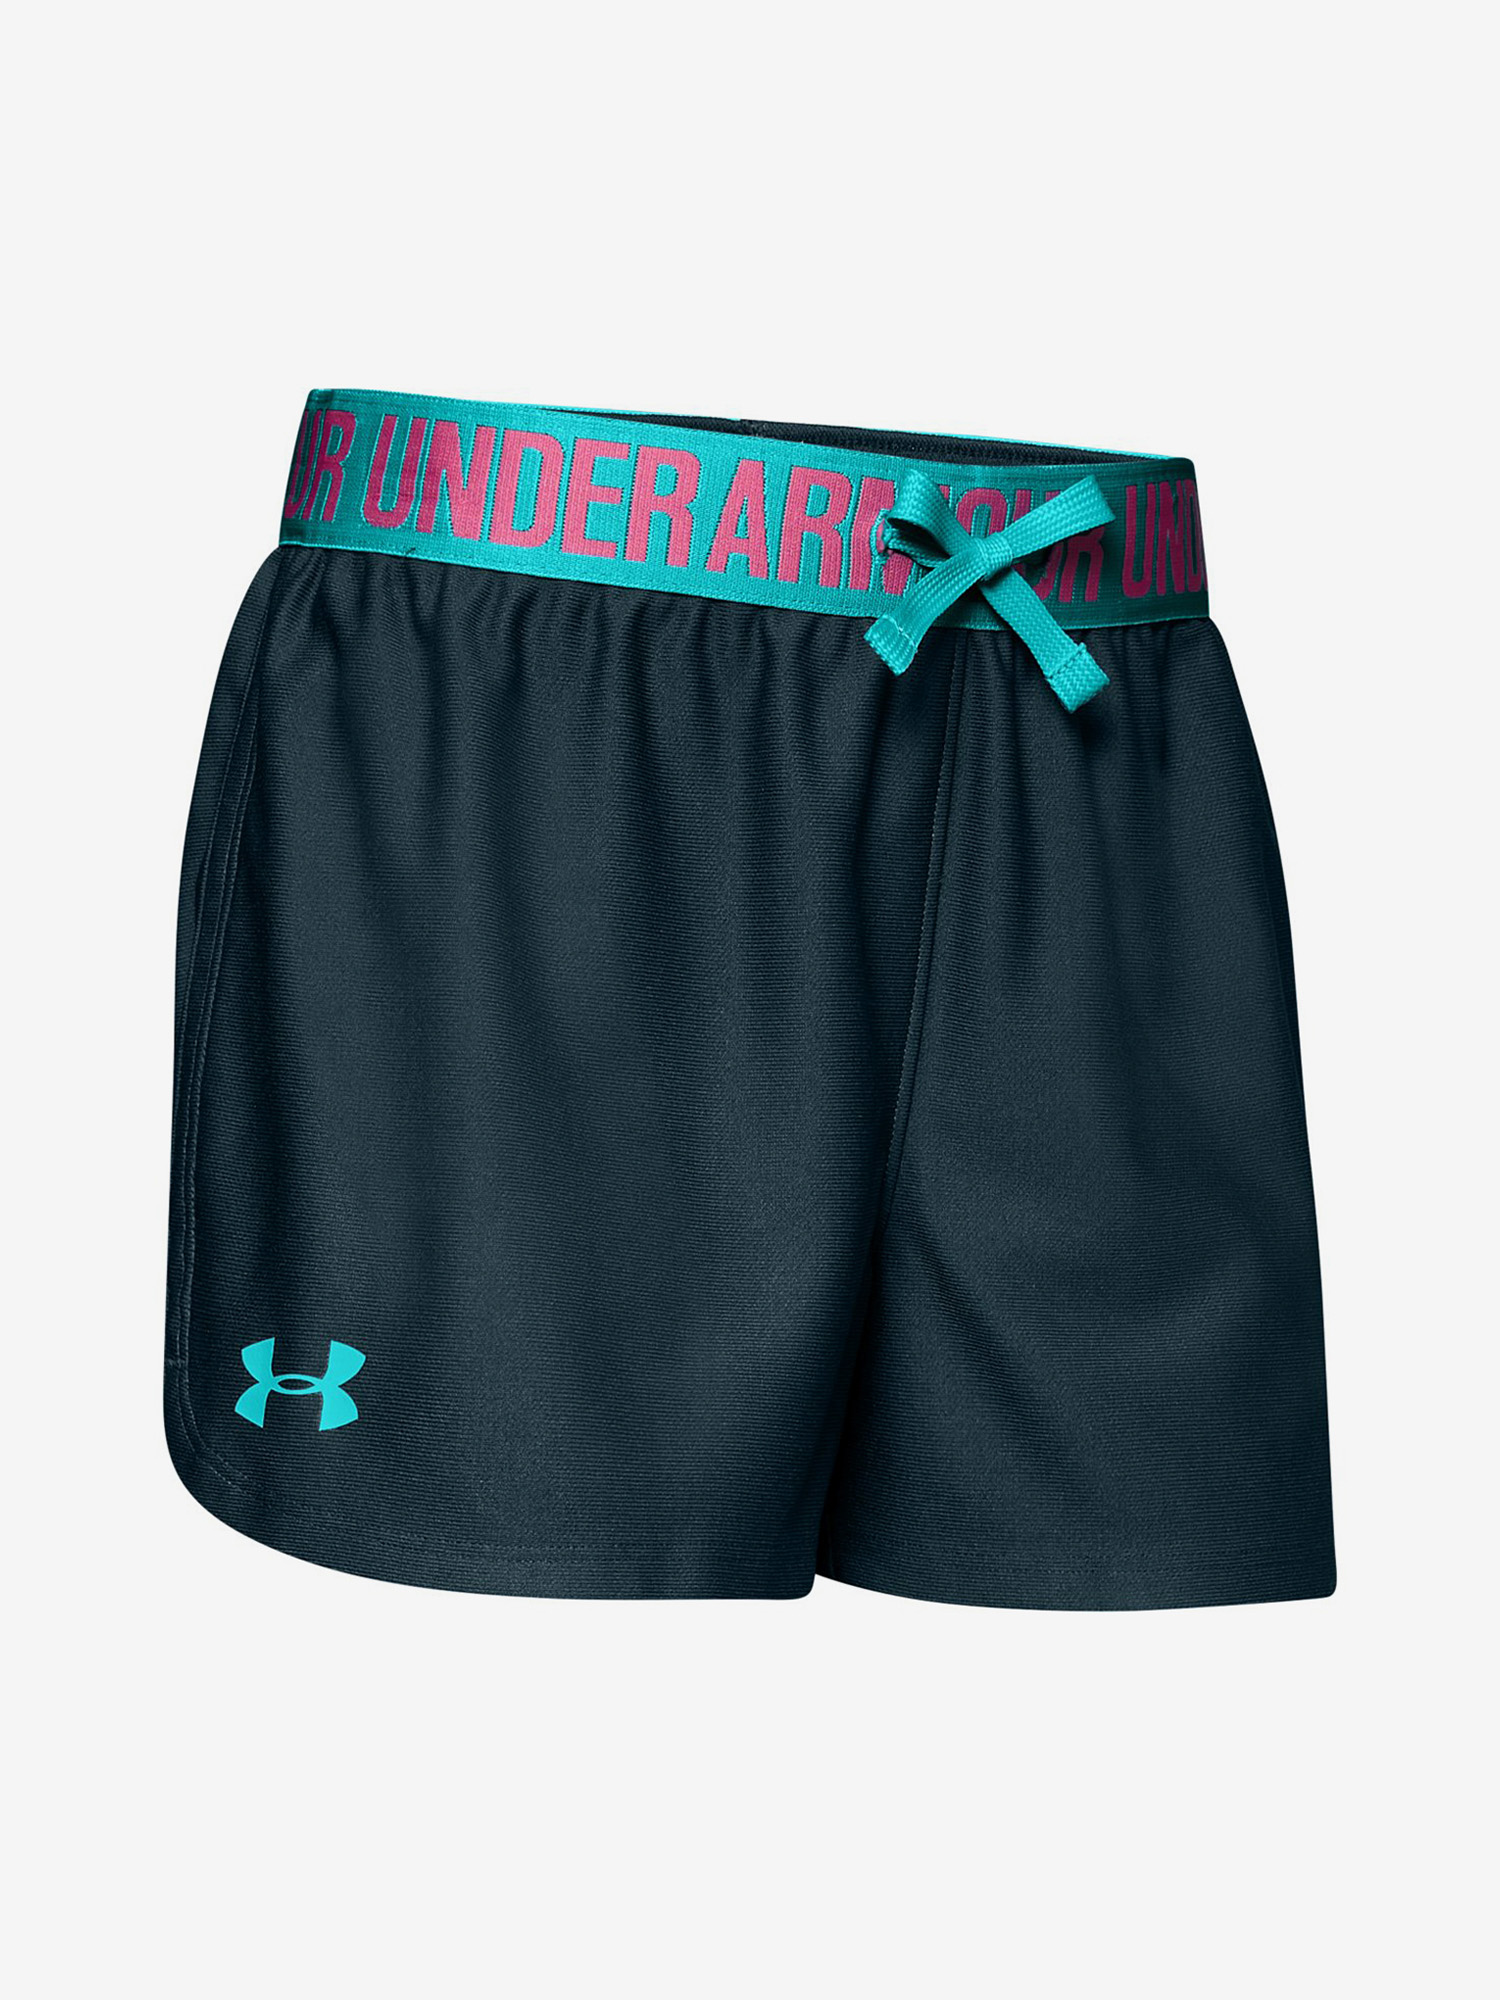 Kraťasy Under Armour Play Up Short-Grn Zelená